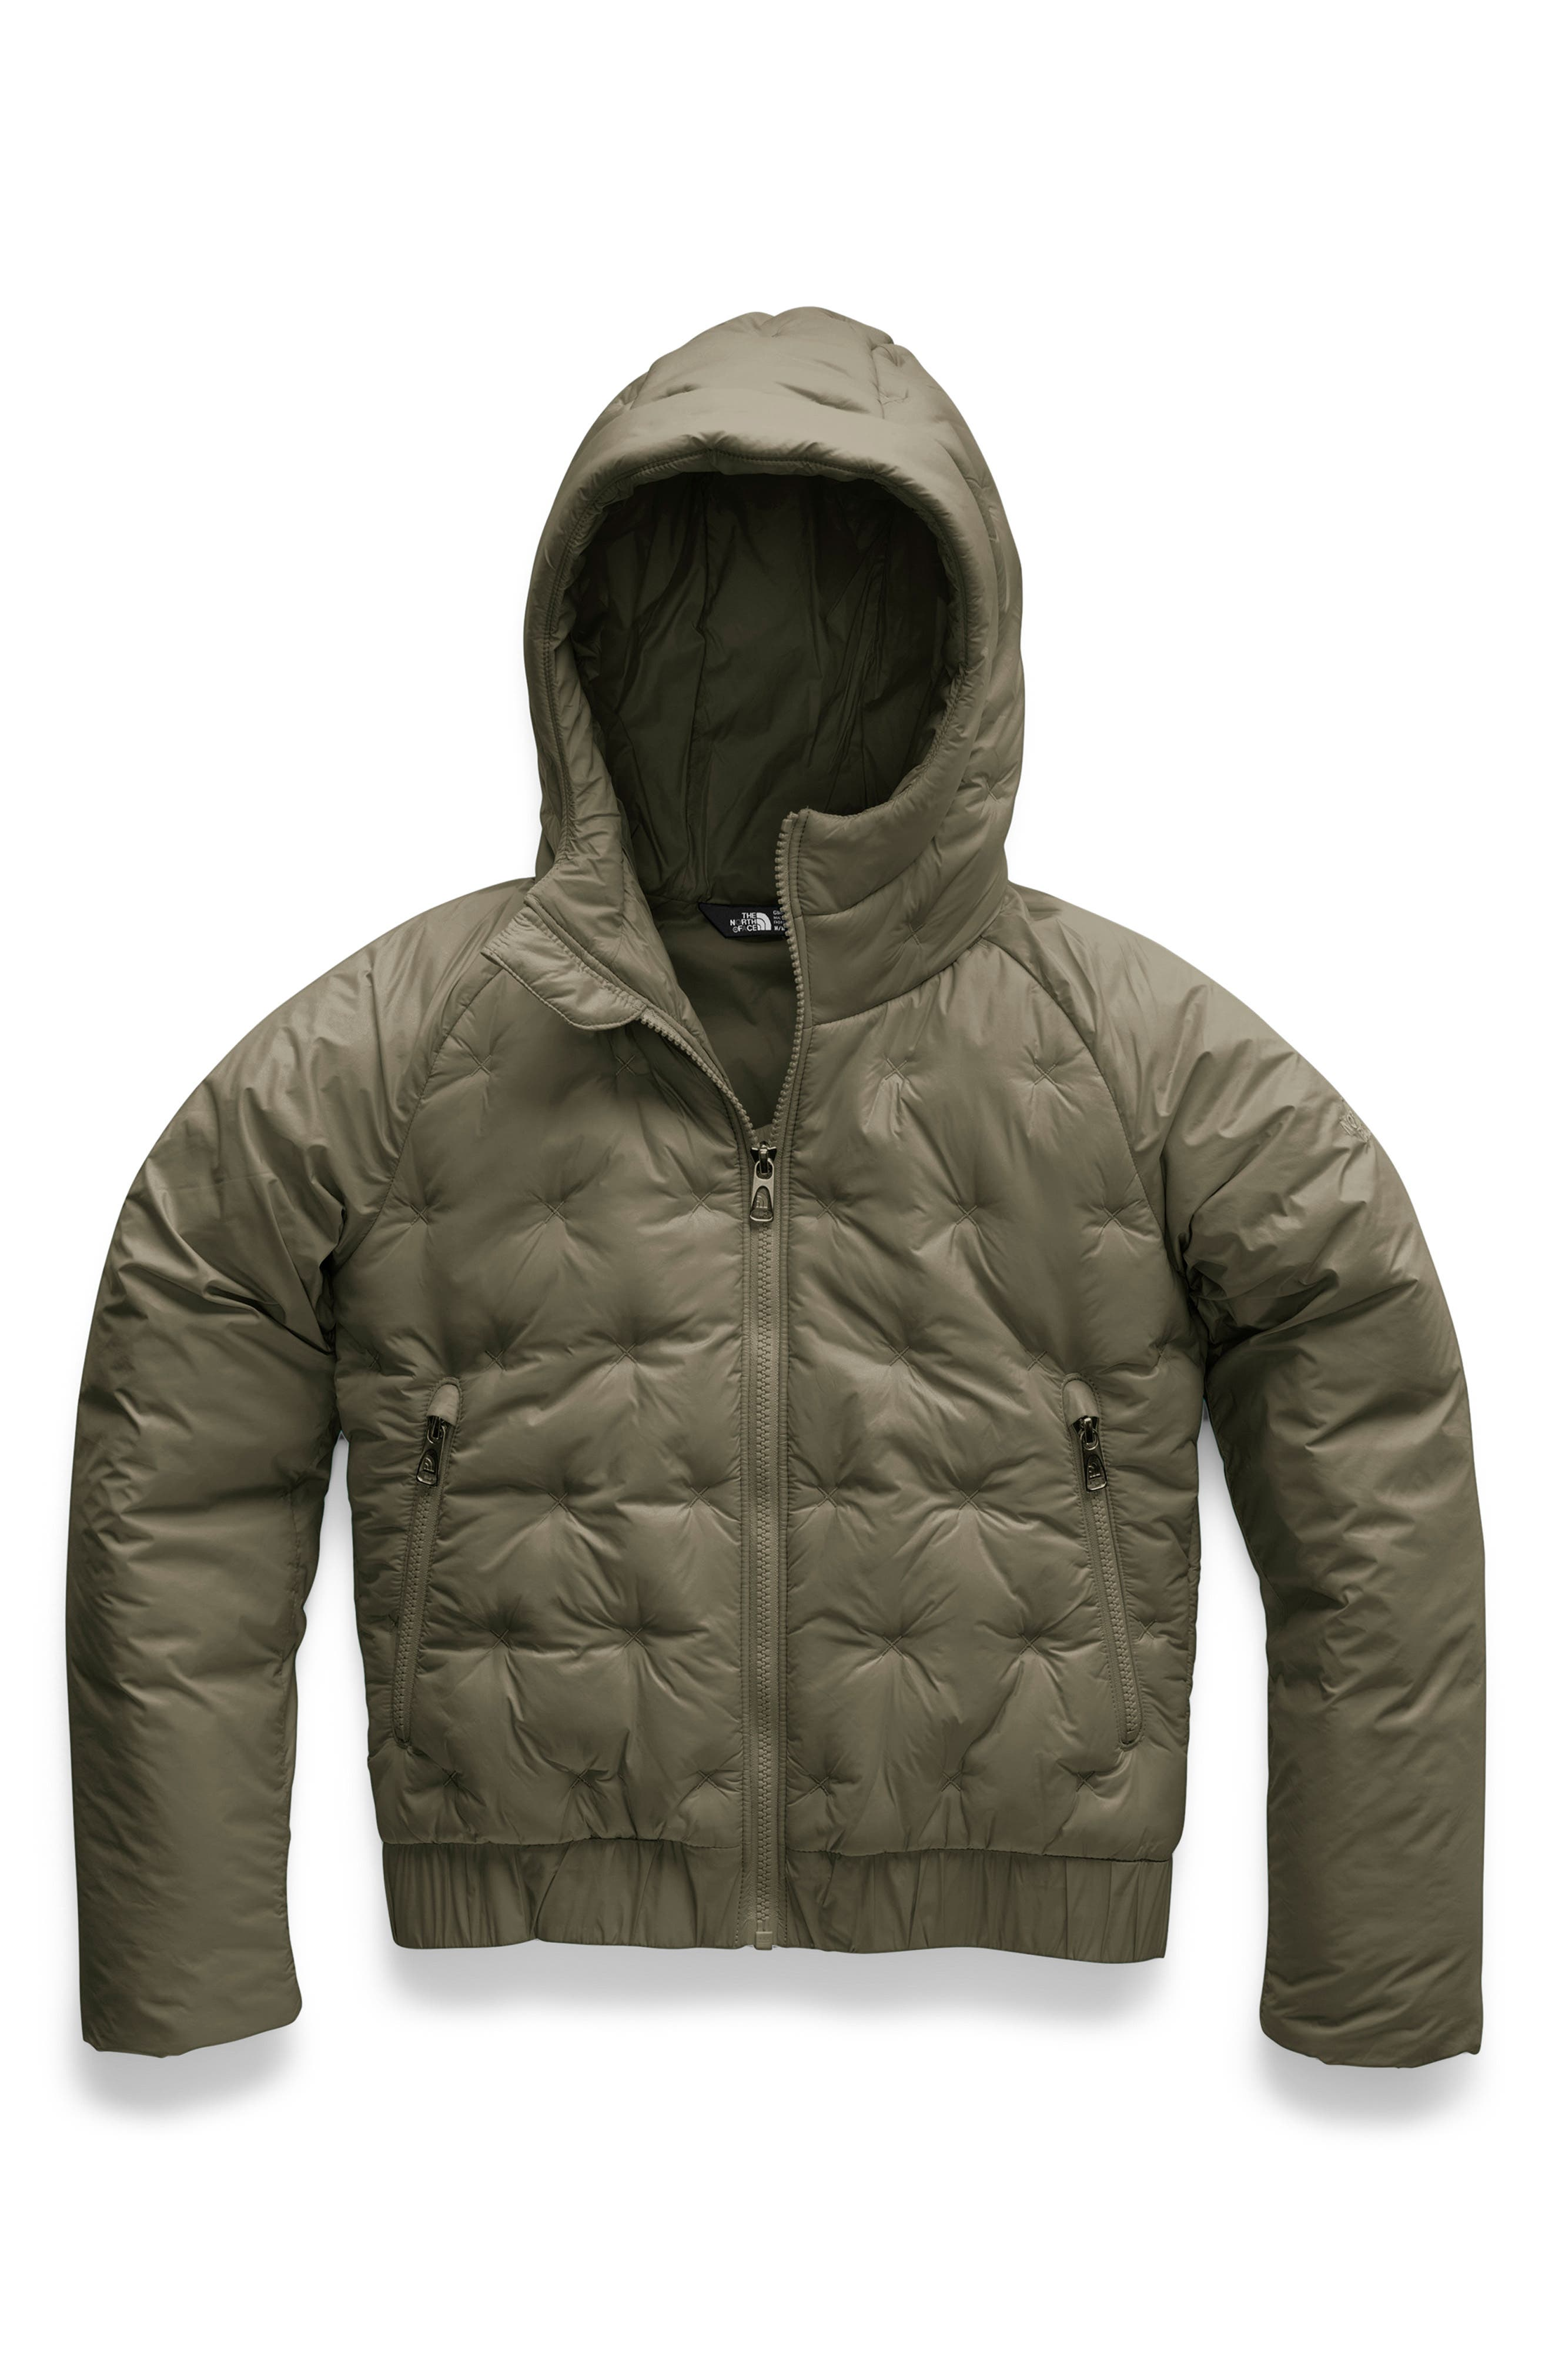 THE NORTH FACE, Mashup Water Repellent Heatseeker<sup>™</sup> Insulated Hoodie, Main thumbnail 1, color, 301